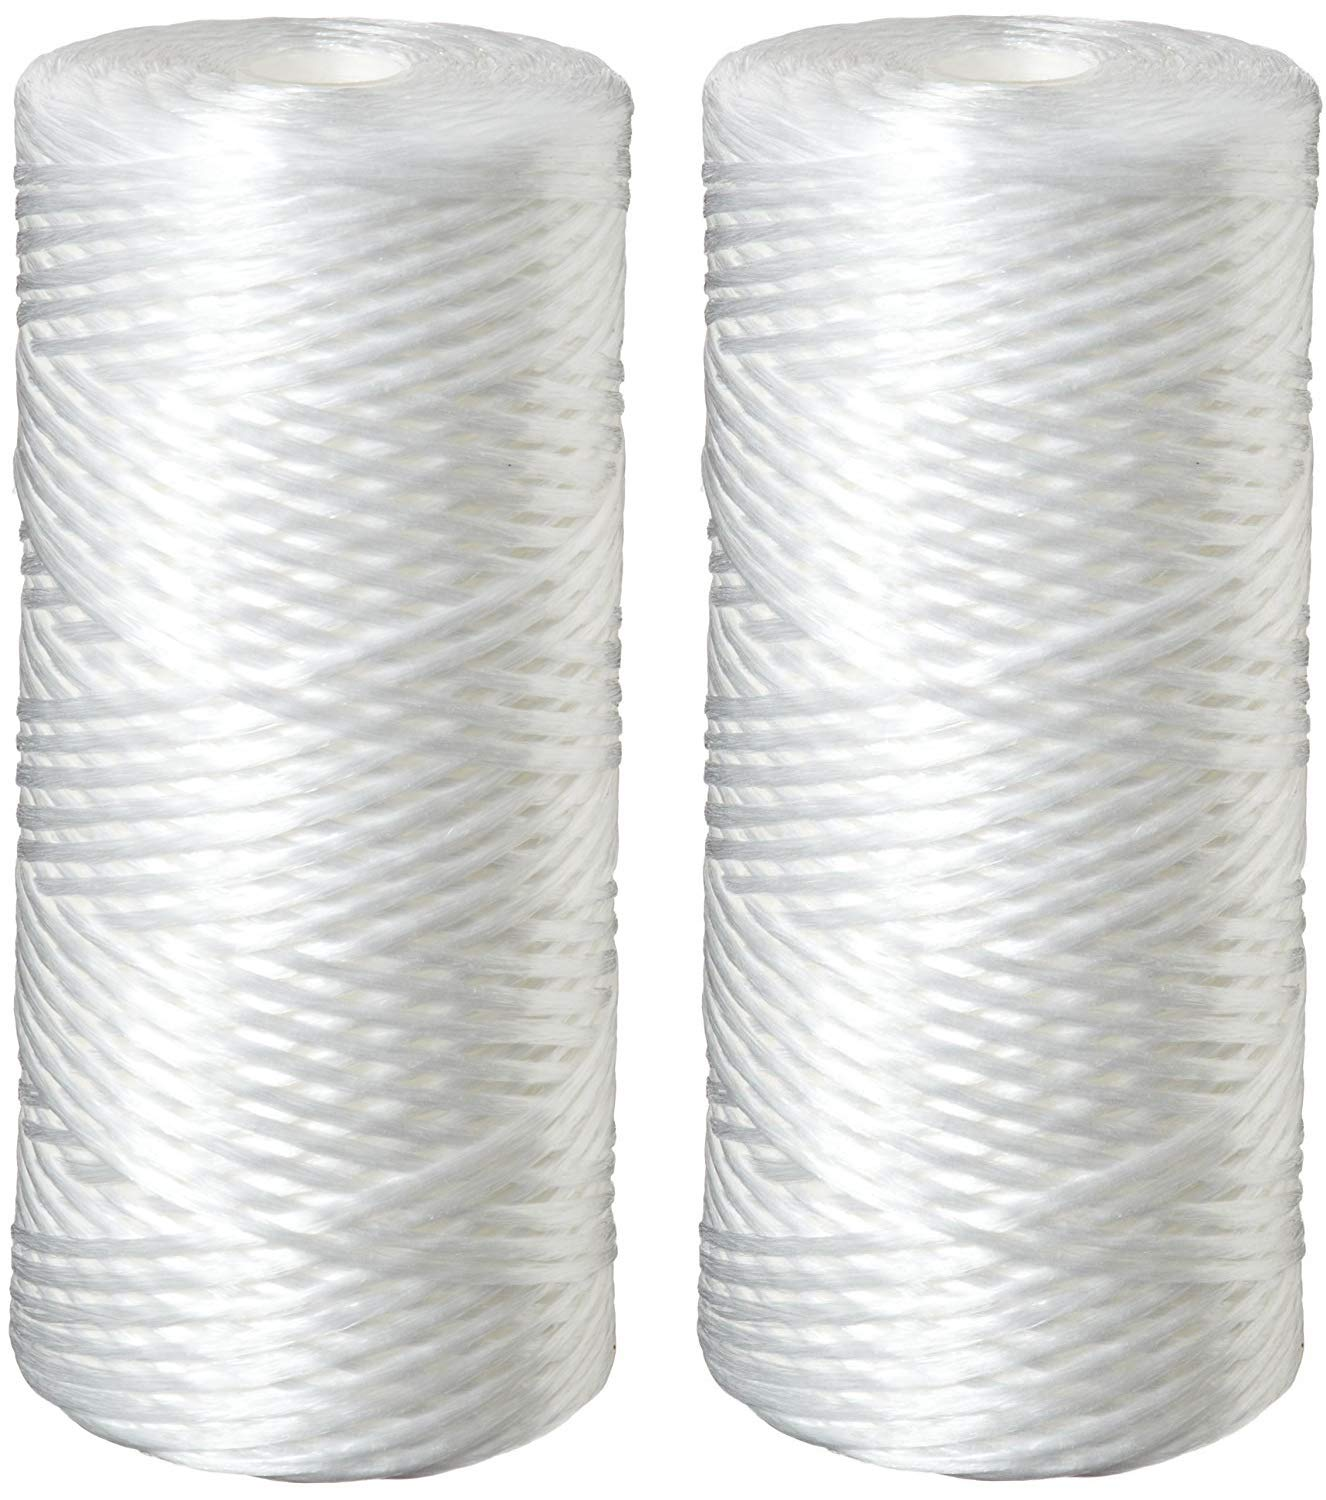 PMI MN-811024 Direct Interchange for PMI-811024 Stainless Steel Millennium Filters